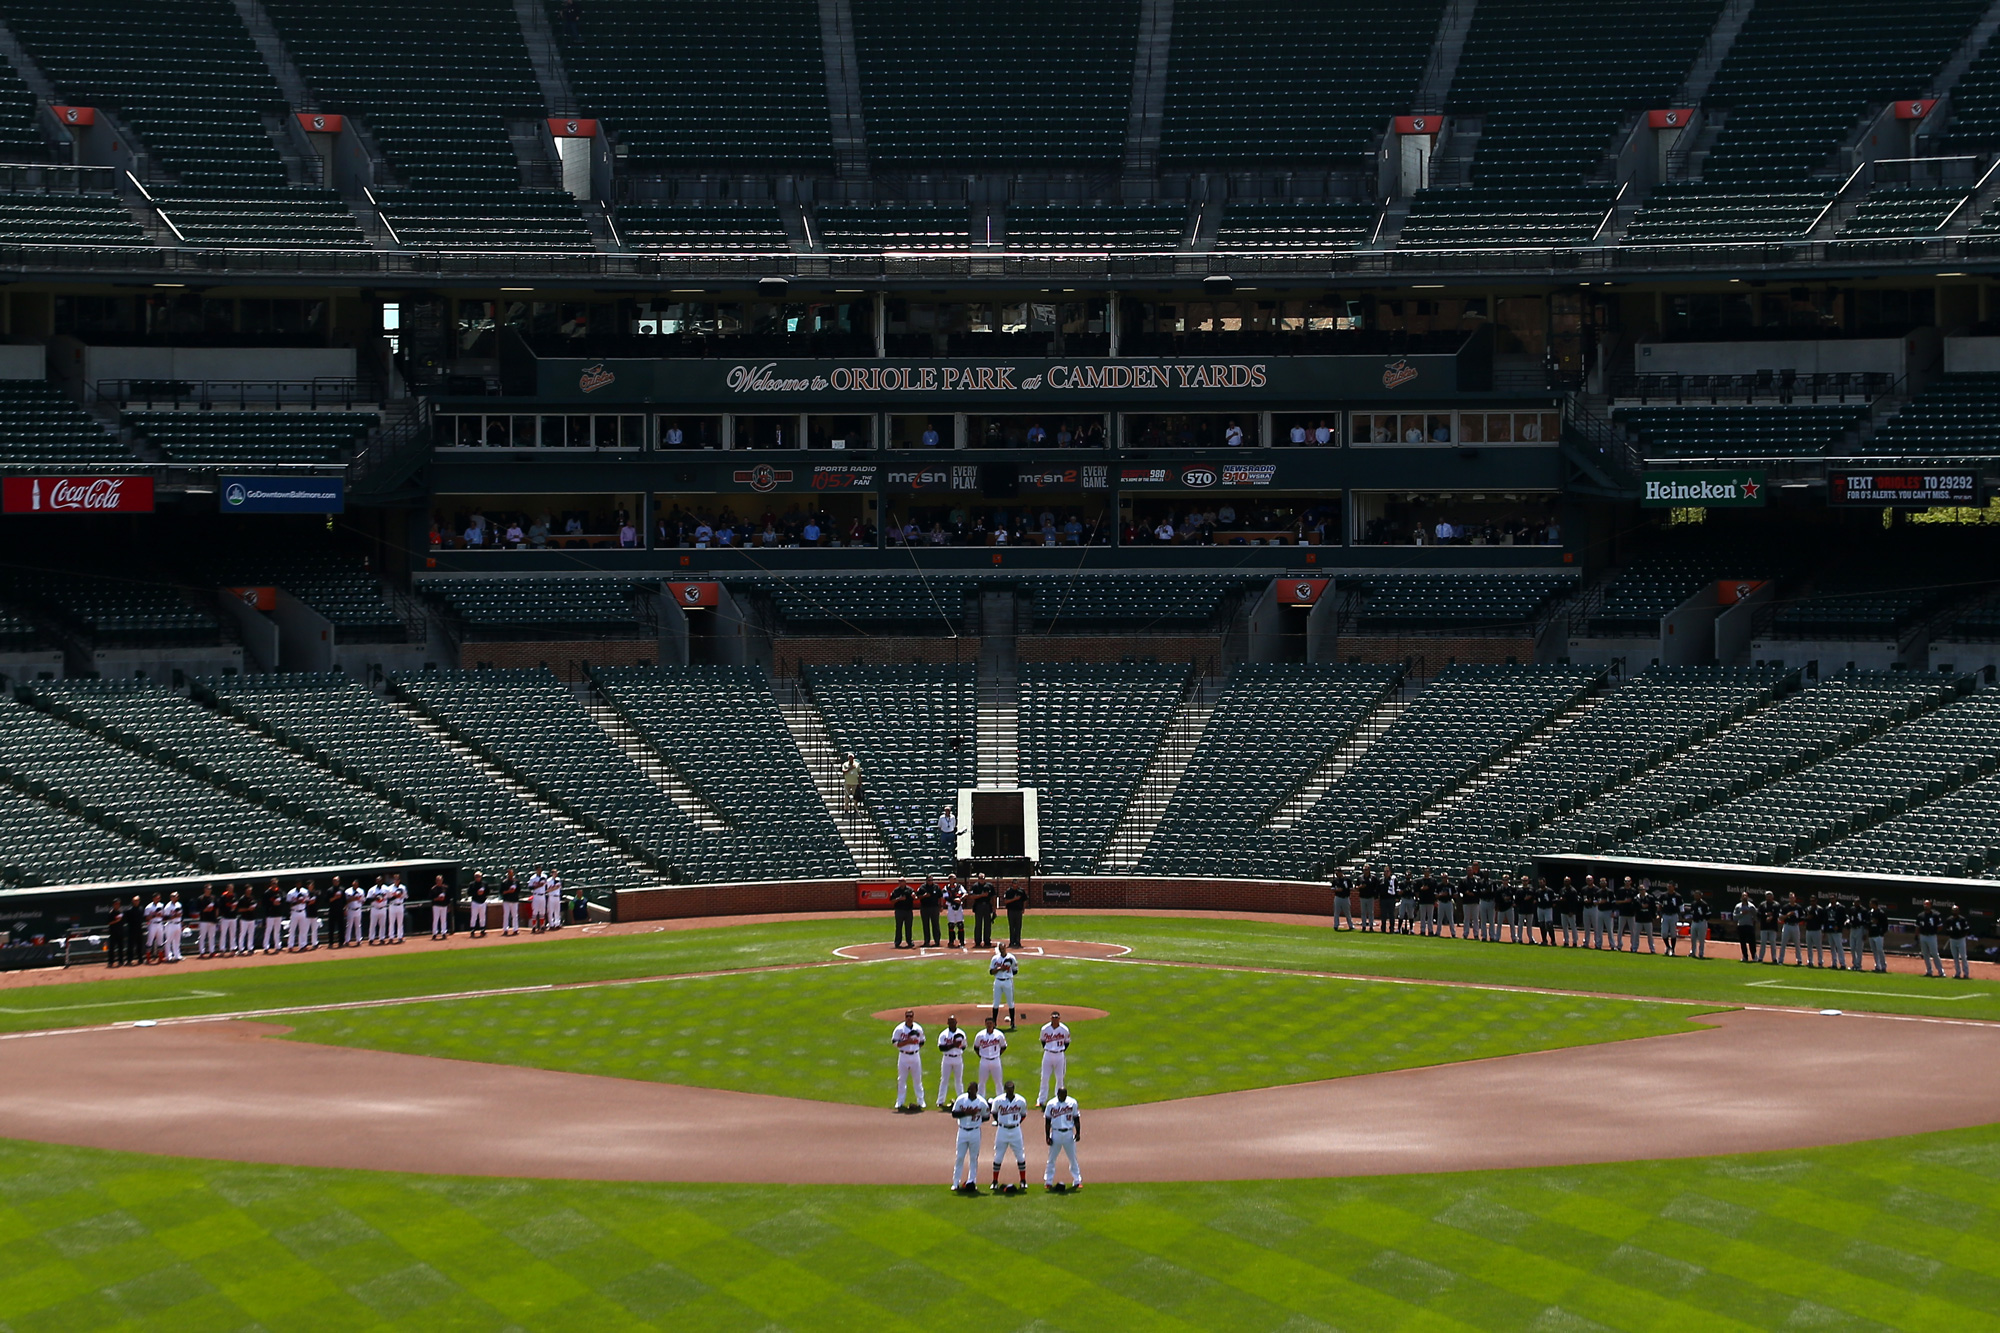 The Baltimore Orioles and Chicago White Sox stand for the nation anthem at an empty Oriole Park at Camden Yards on April 29, 2015 in Baltimore, Maryland.